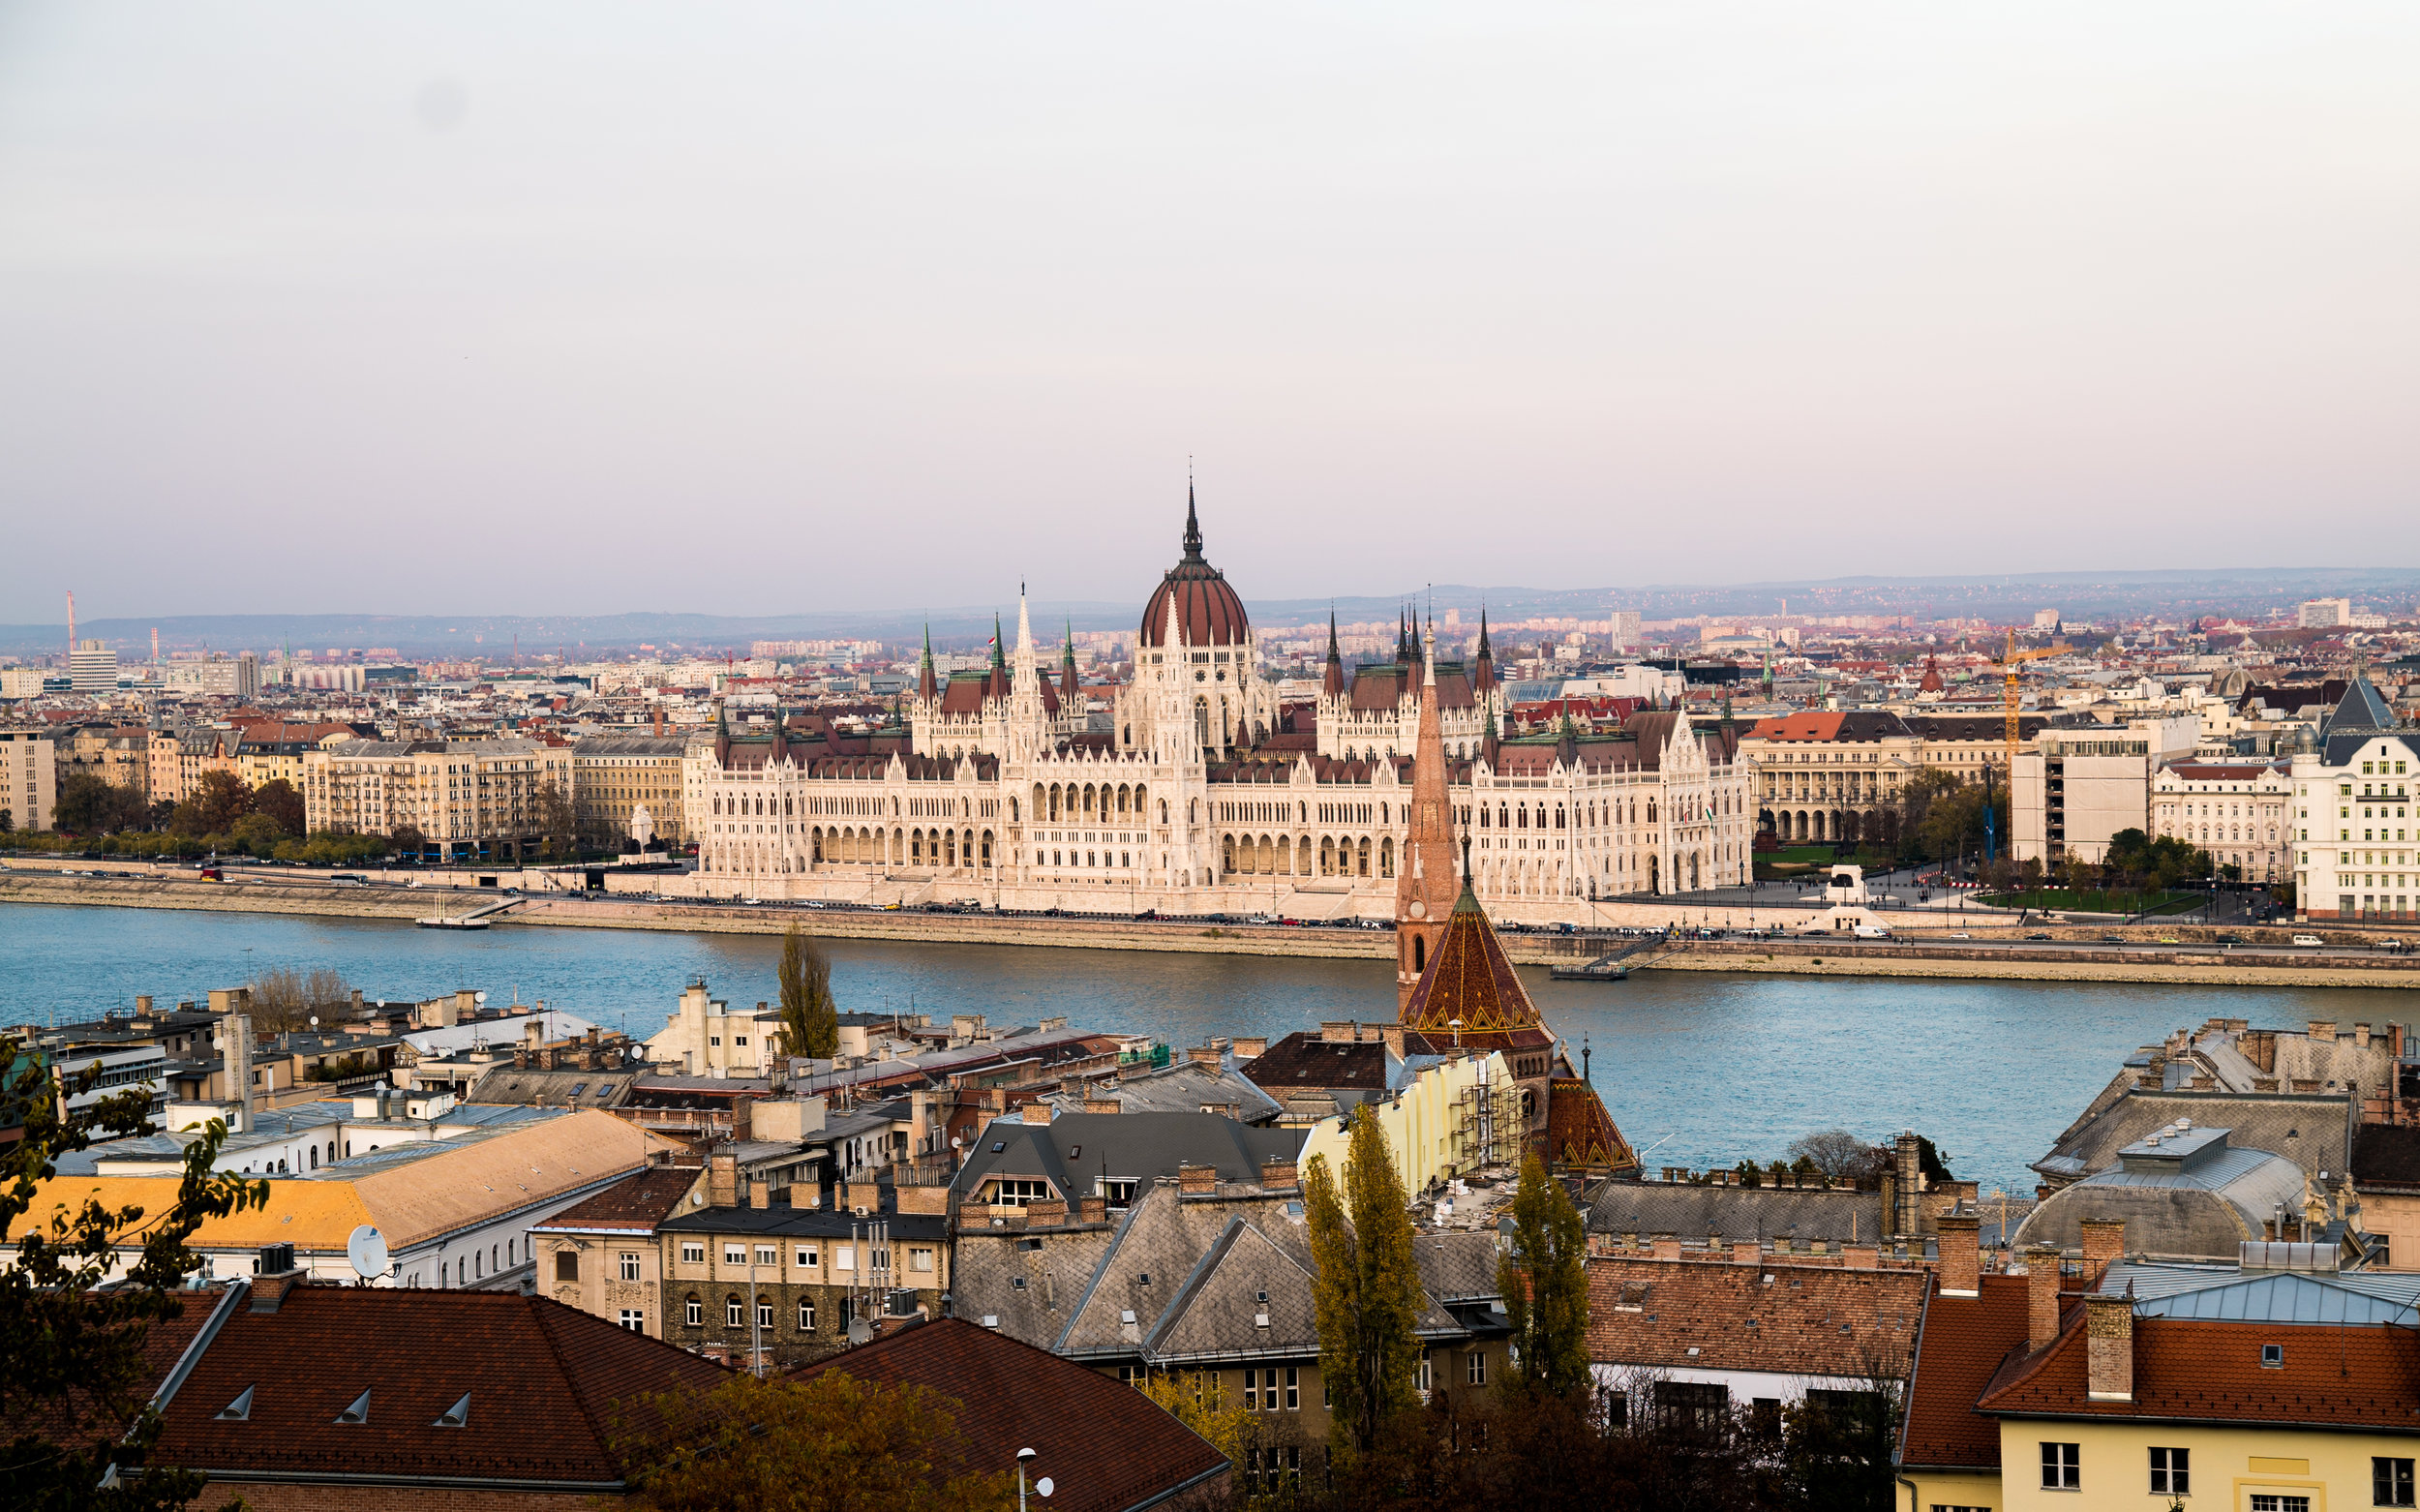 Overlooking Pest and Parliament from Buda